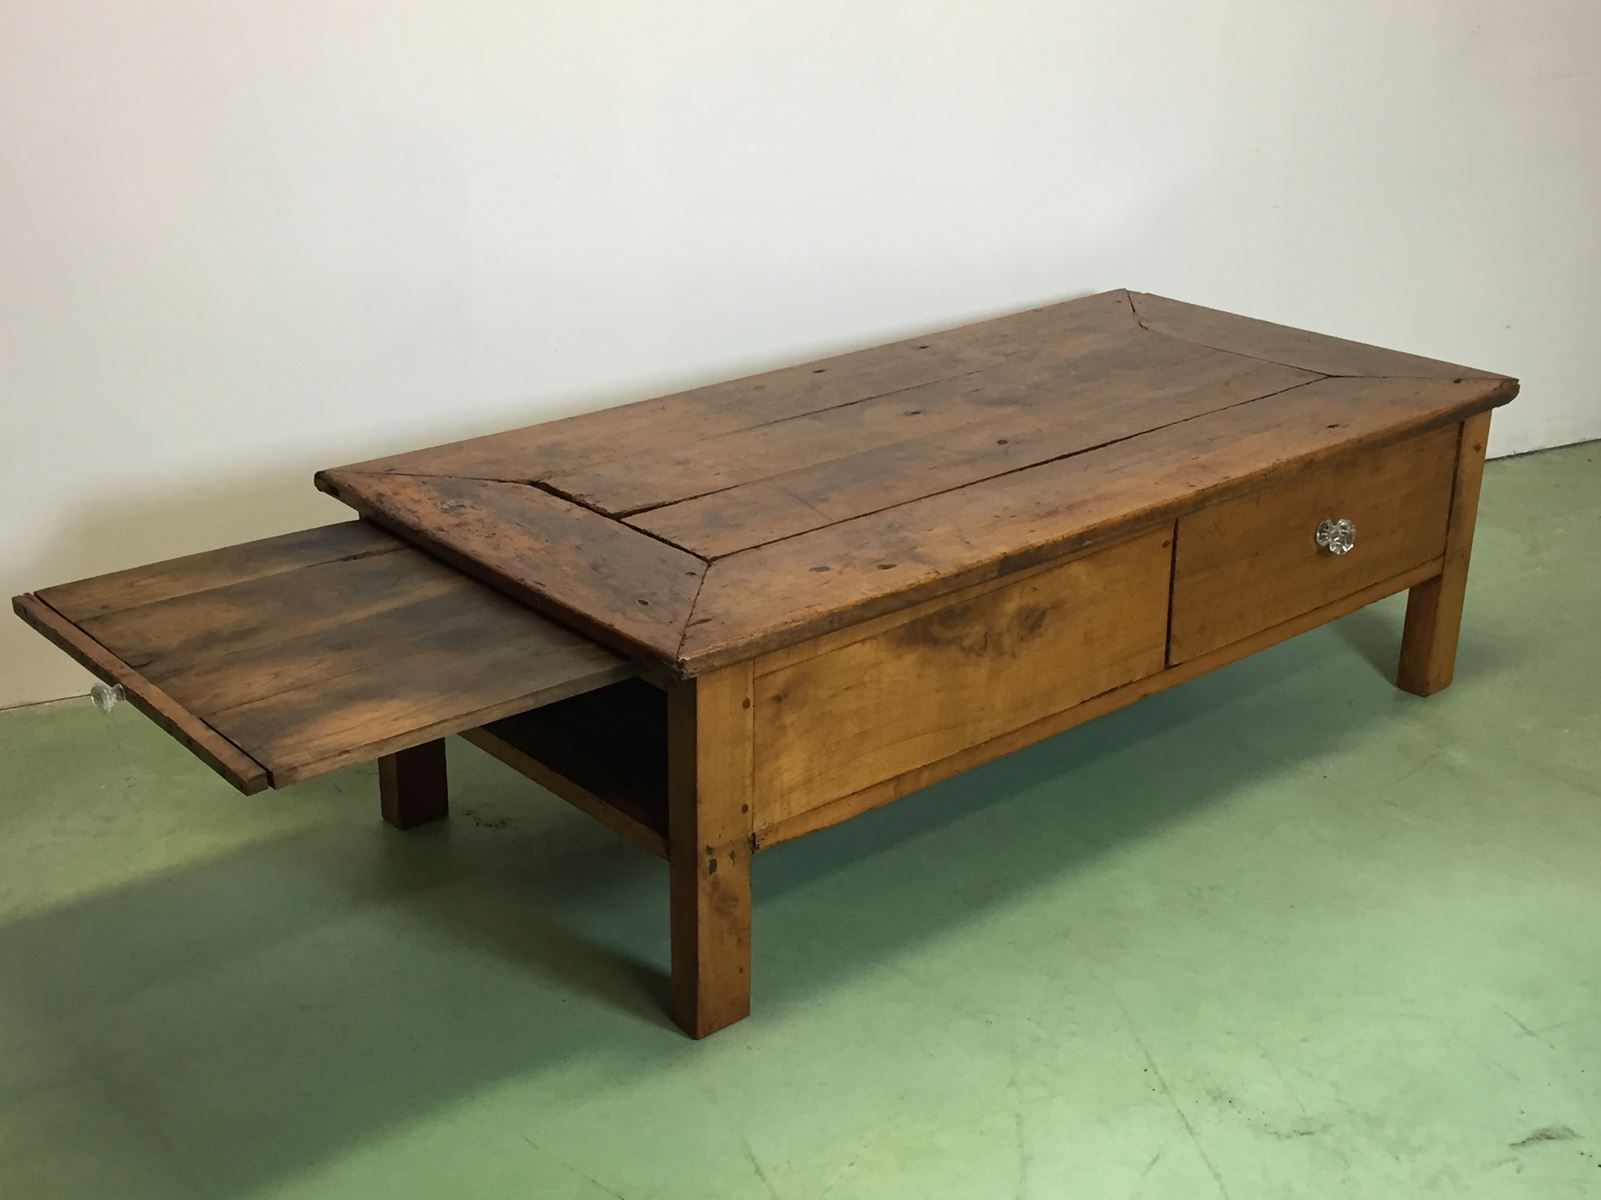 Antique Coffee Table In Cherry Wood 3. $1,226.00. Price Per Piece